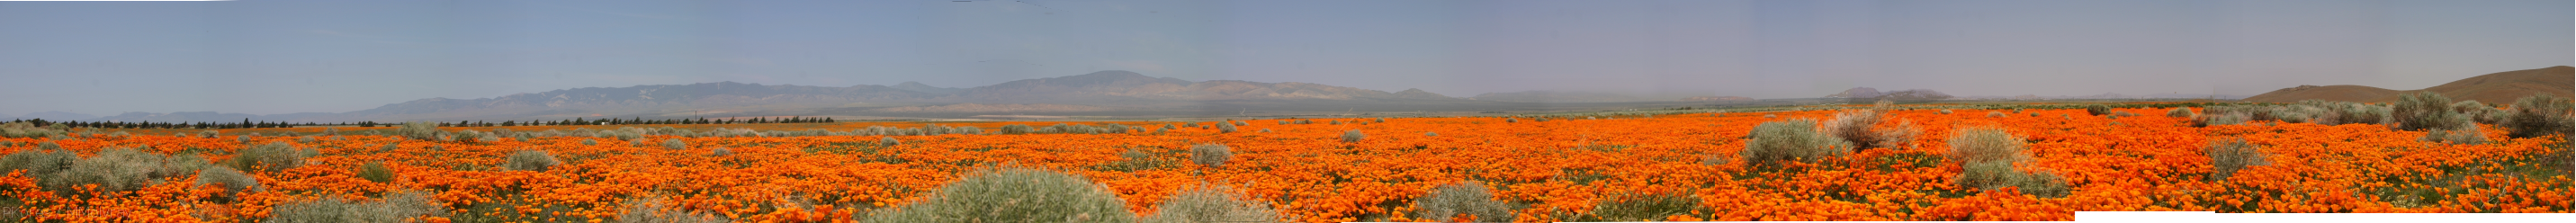 panoramic view of orange poppy fields stretching from horizon to horizon